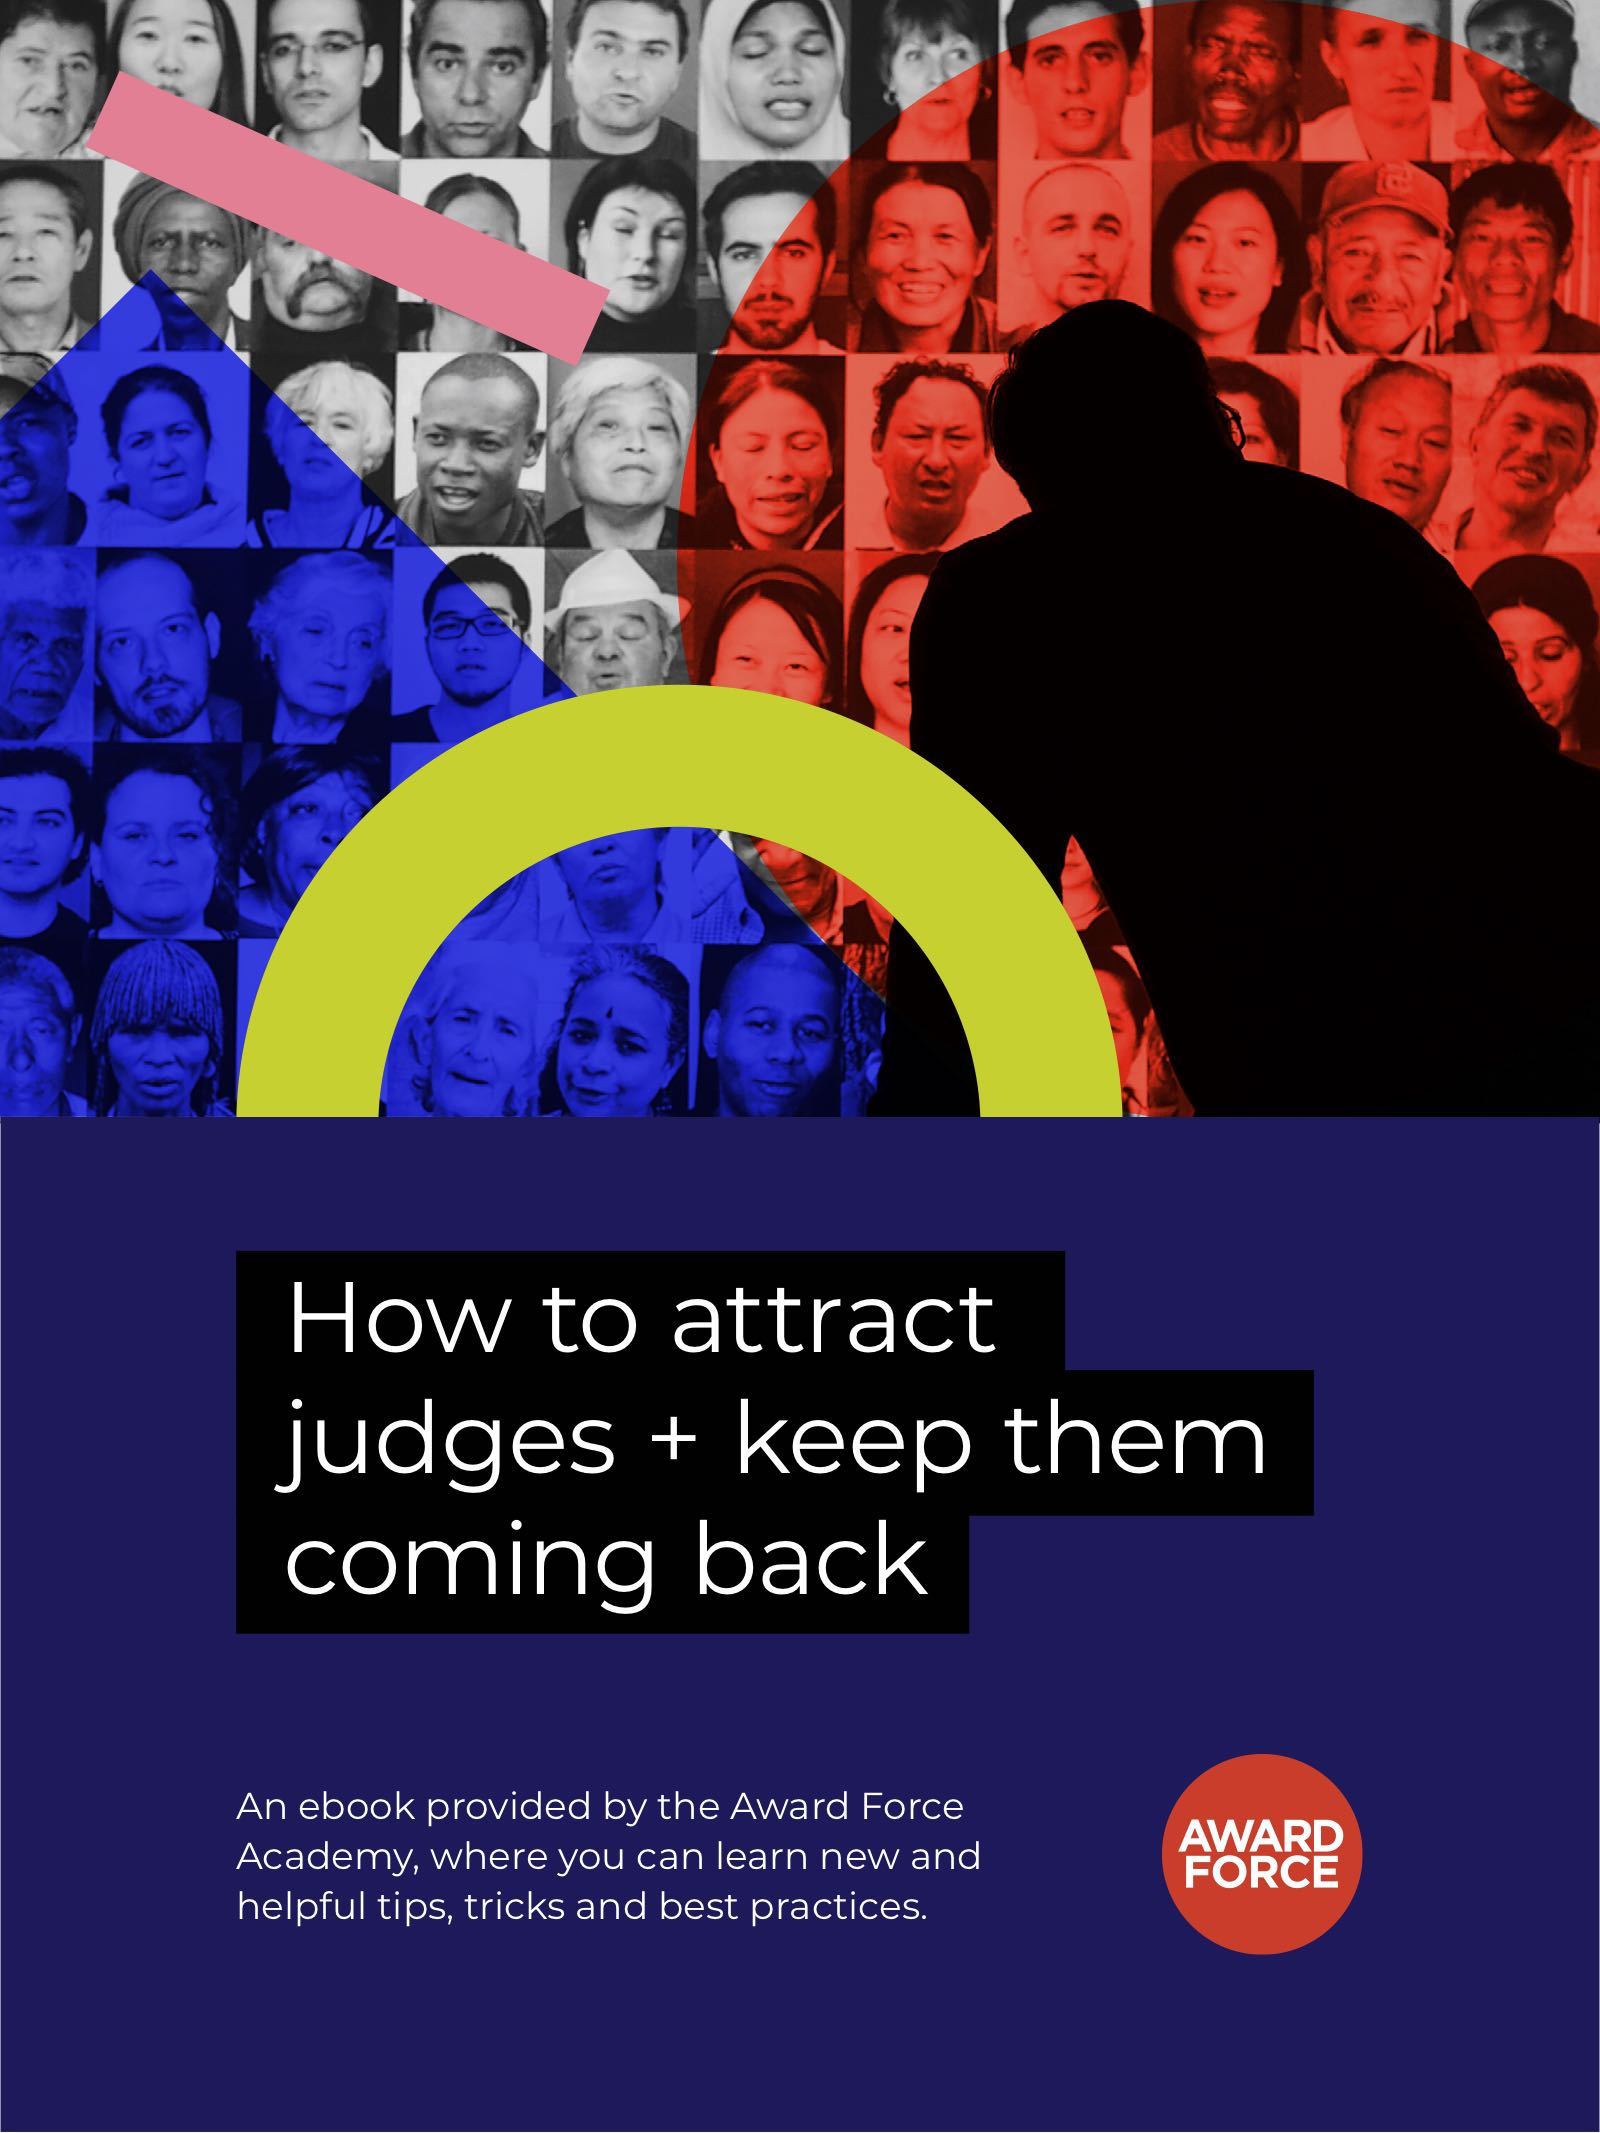 Ebook how to attract judges